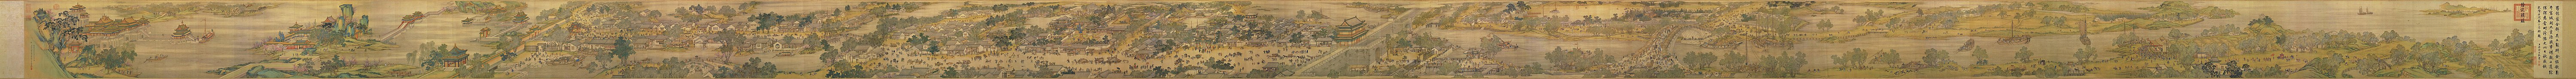 Panorama of Along the River During Qingming Festival, an 18th century remake of the 12th century original